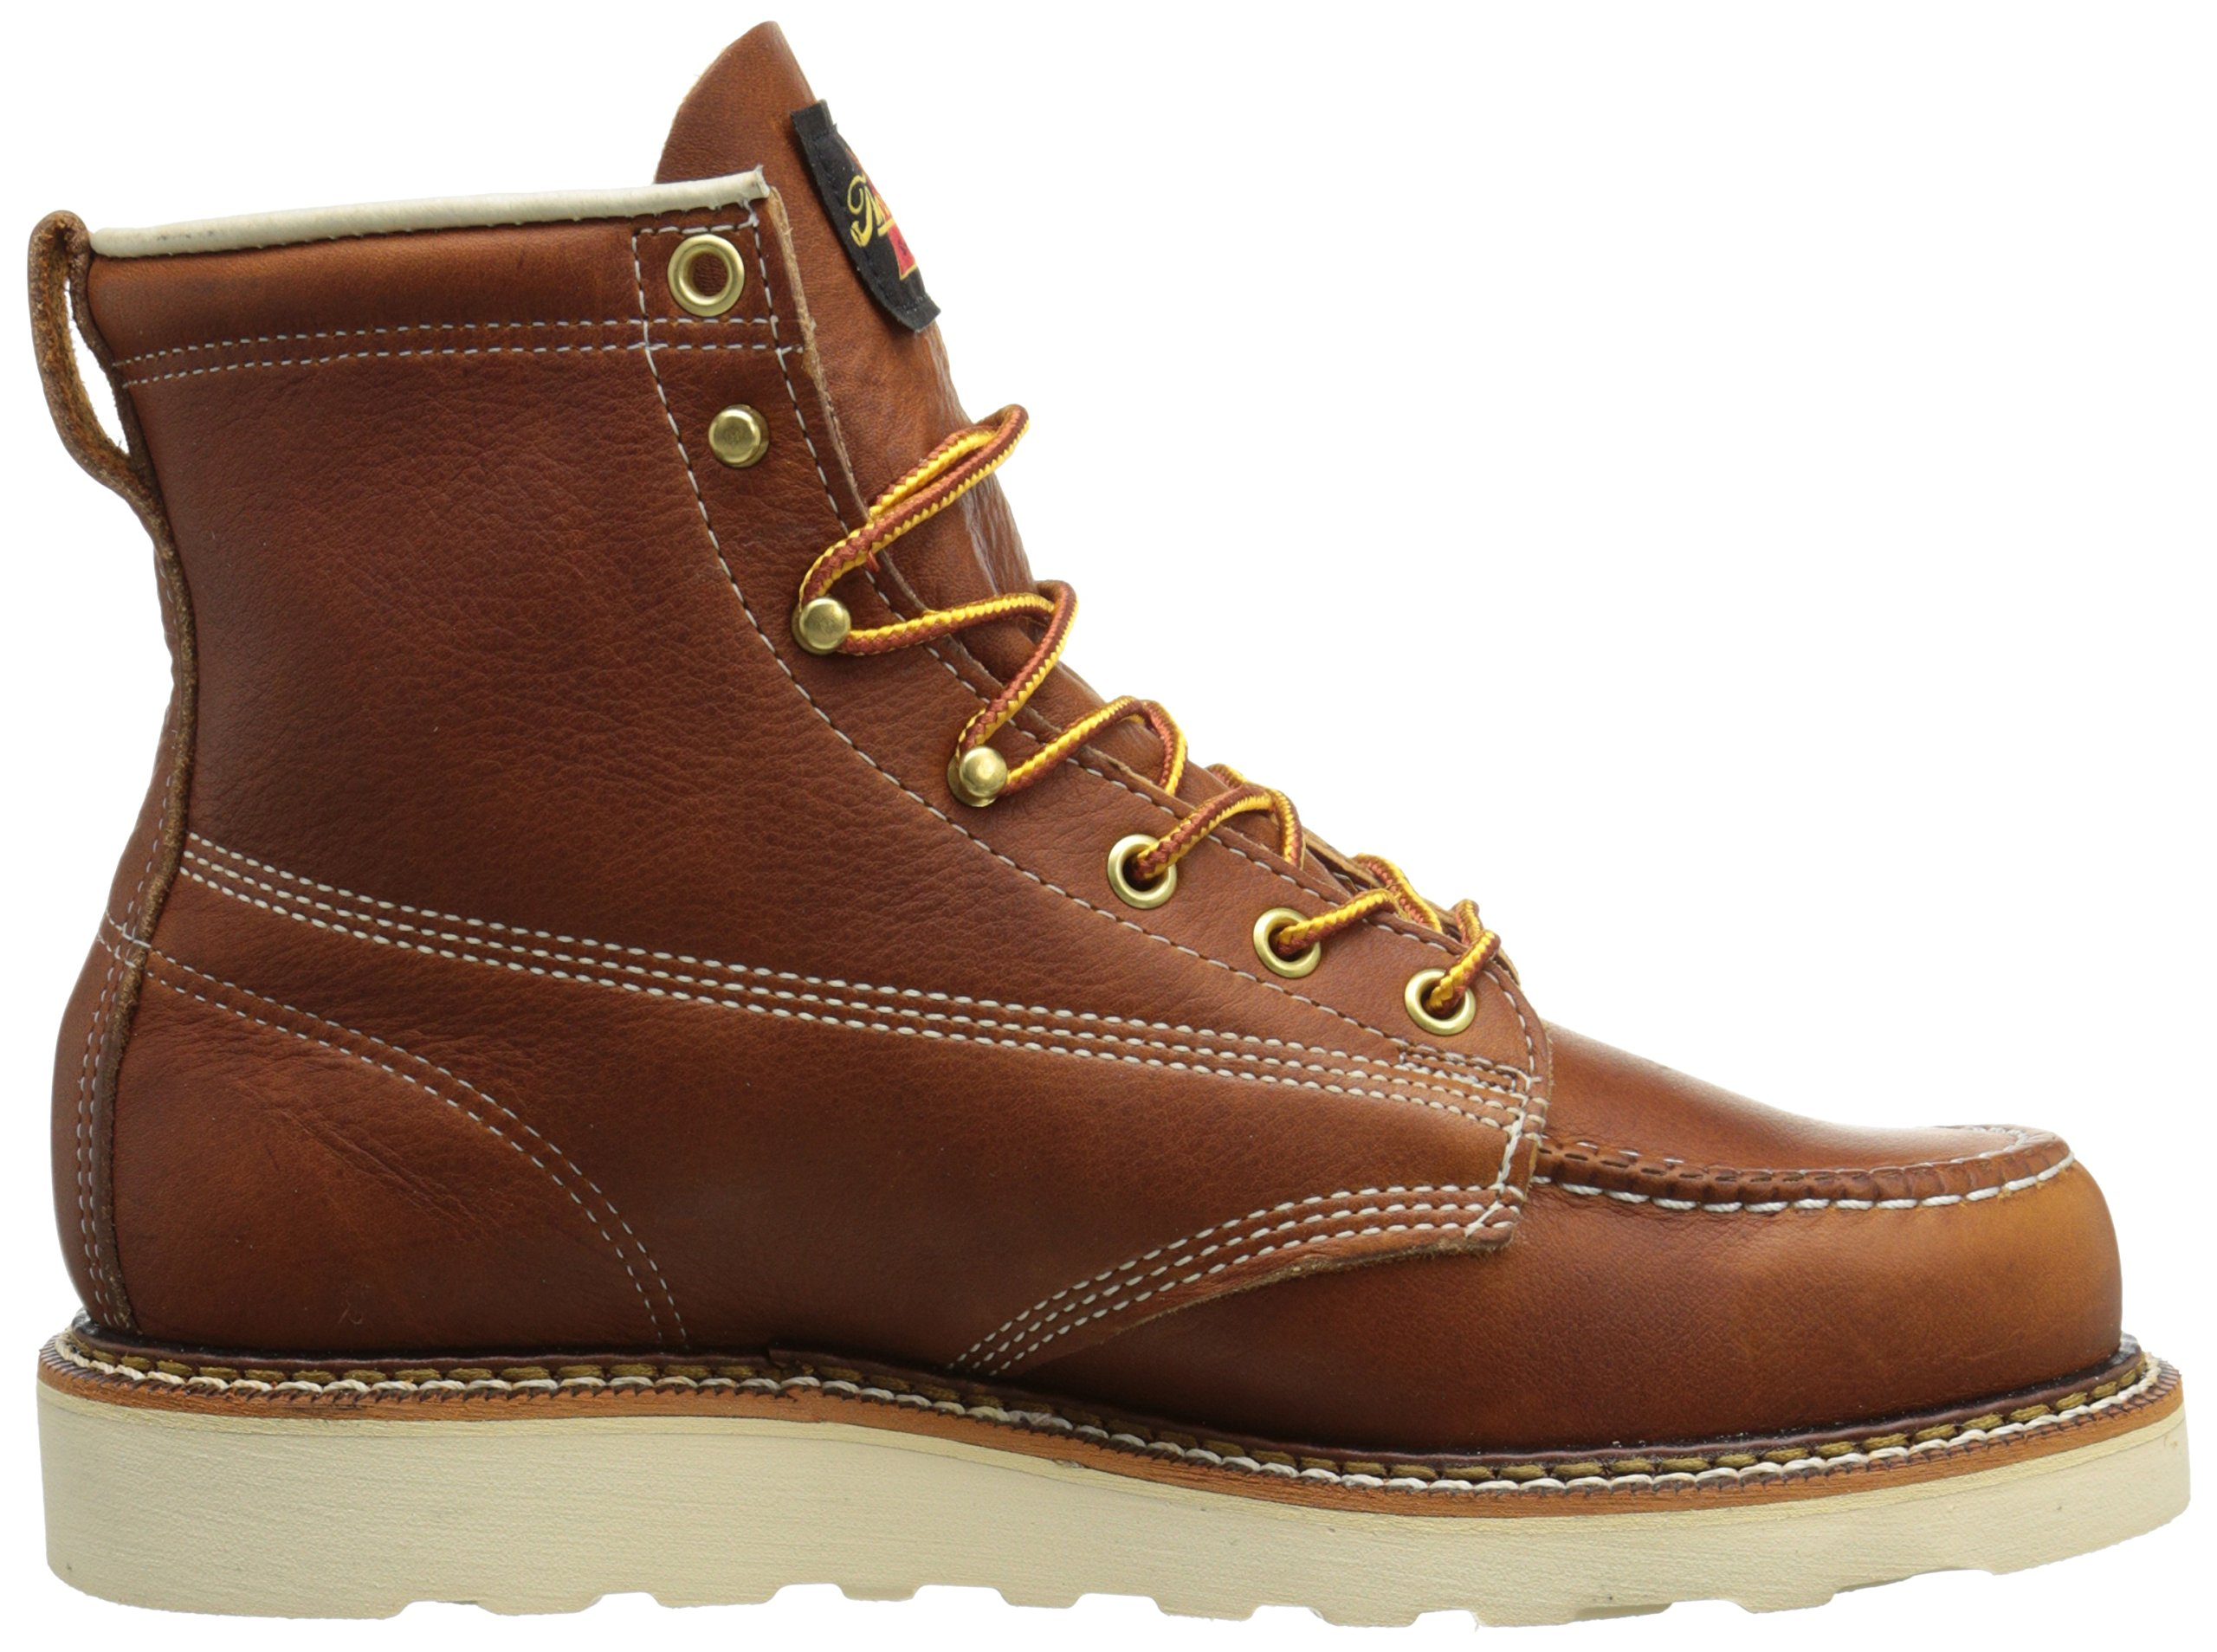 Thorogood-American-Heritage-Men-039-s-6-034-Moc-Toe-Max-Wedge-Non-Safety-Boots thumbnail 23